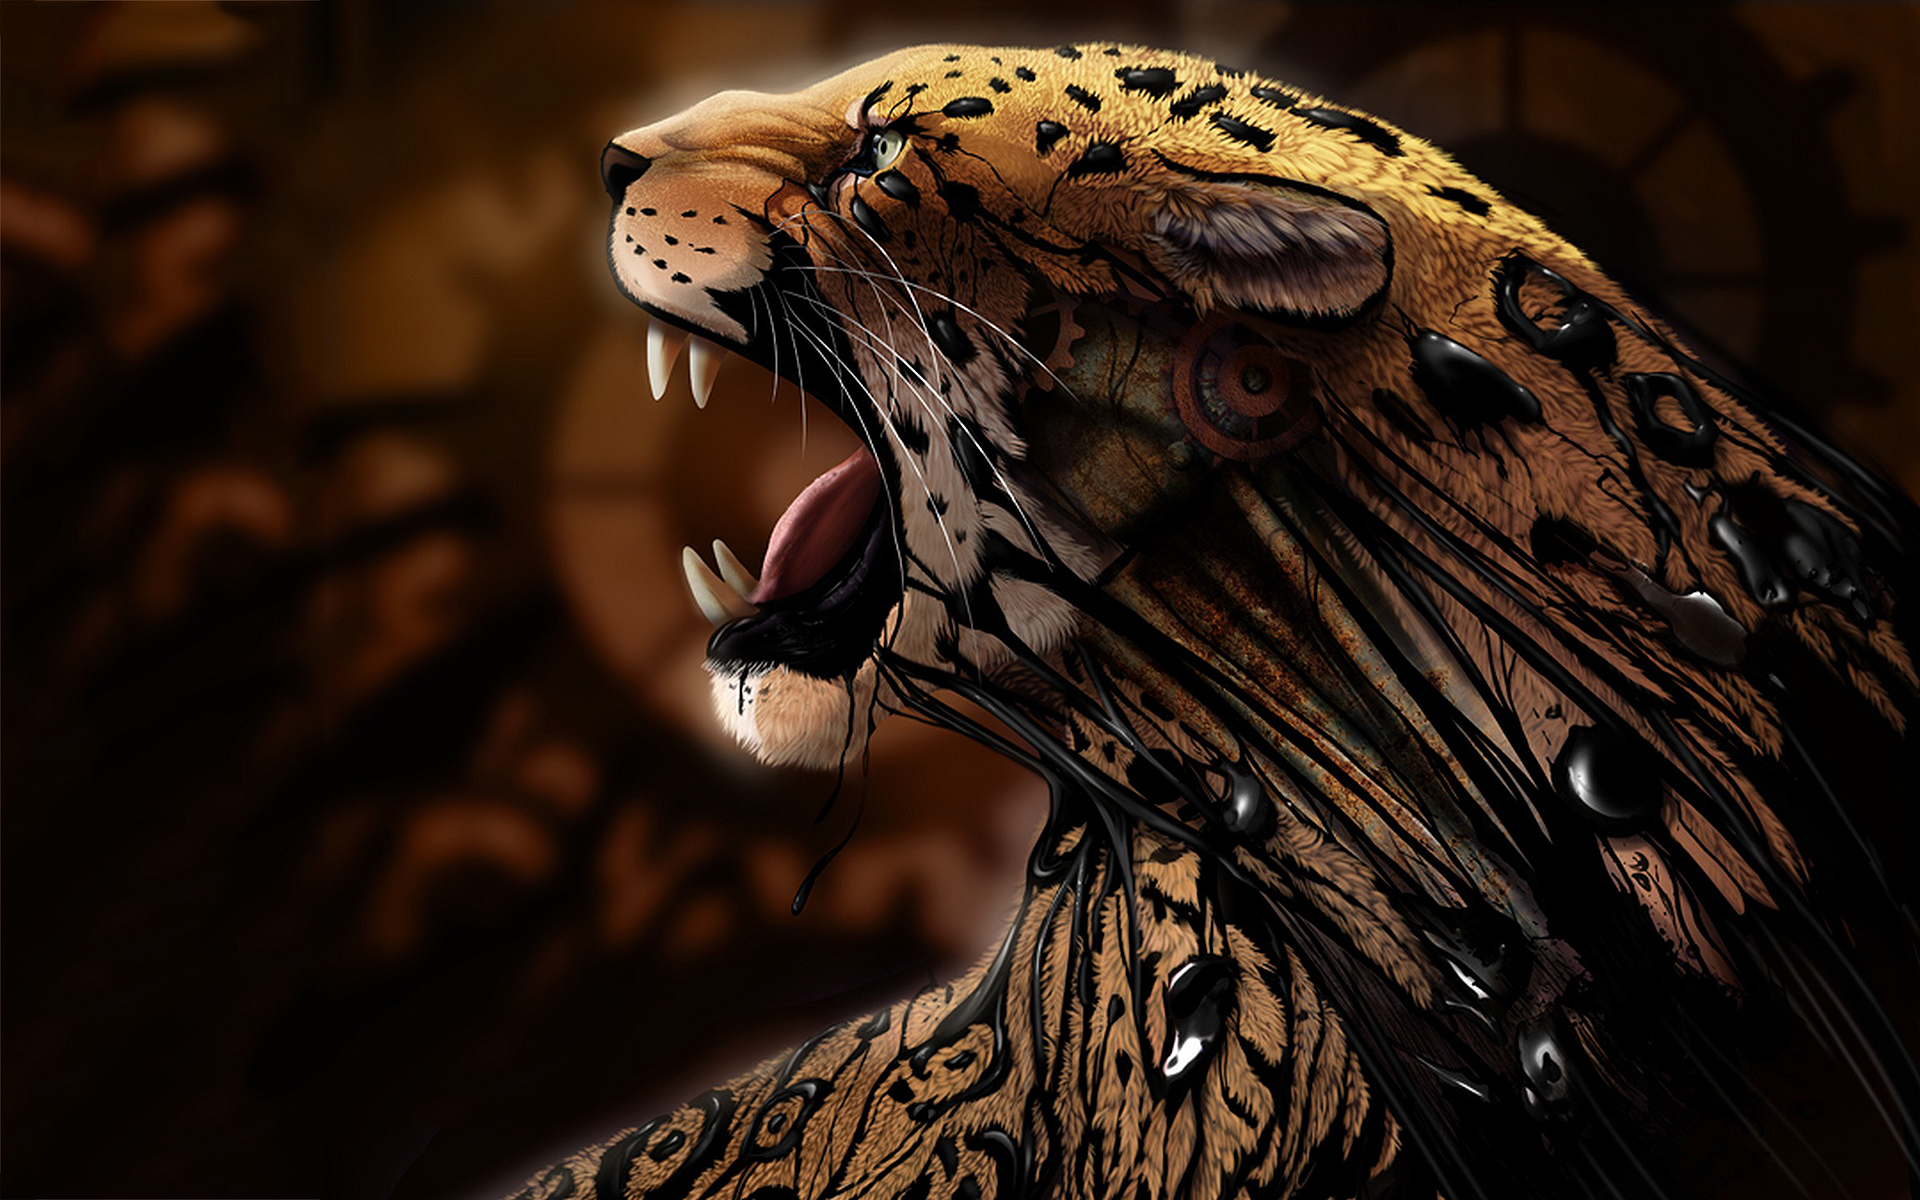 Jaguar artwork